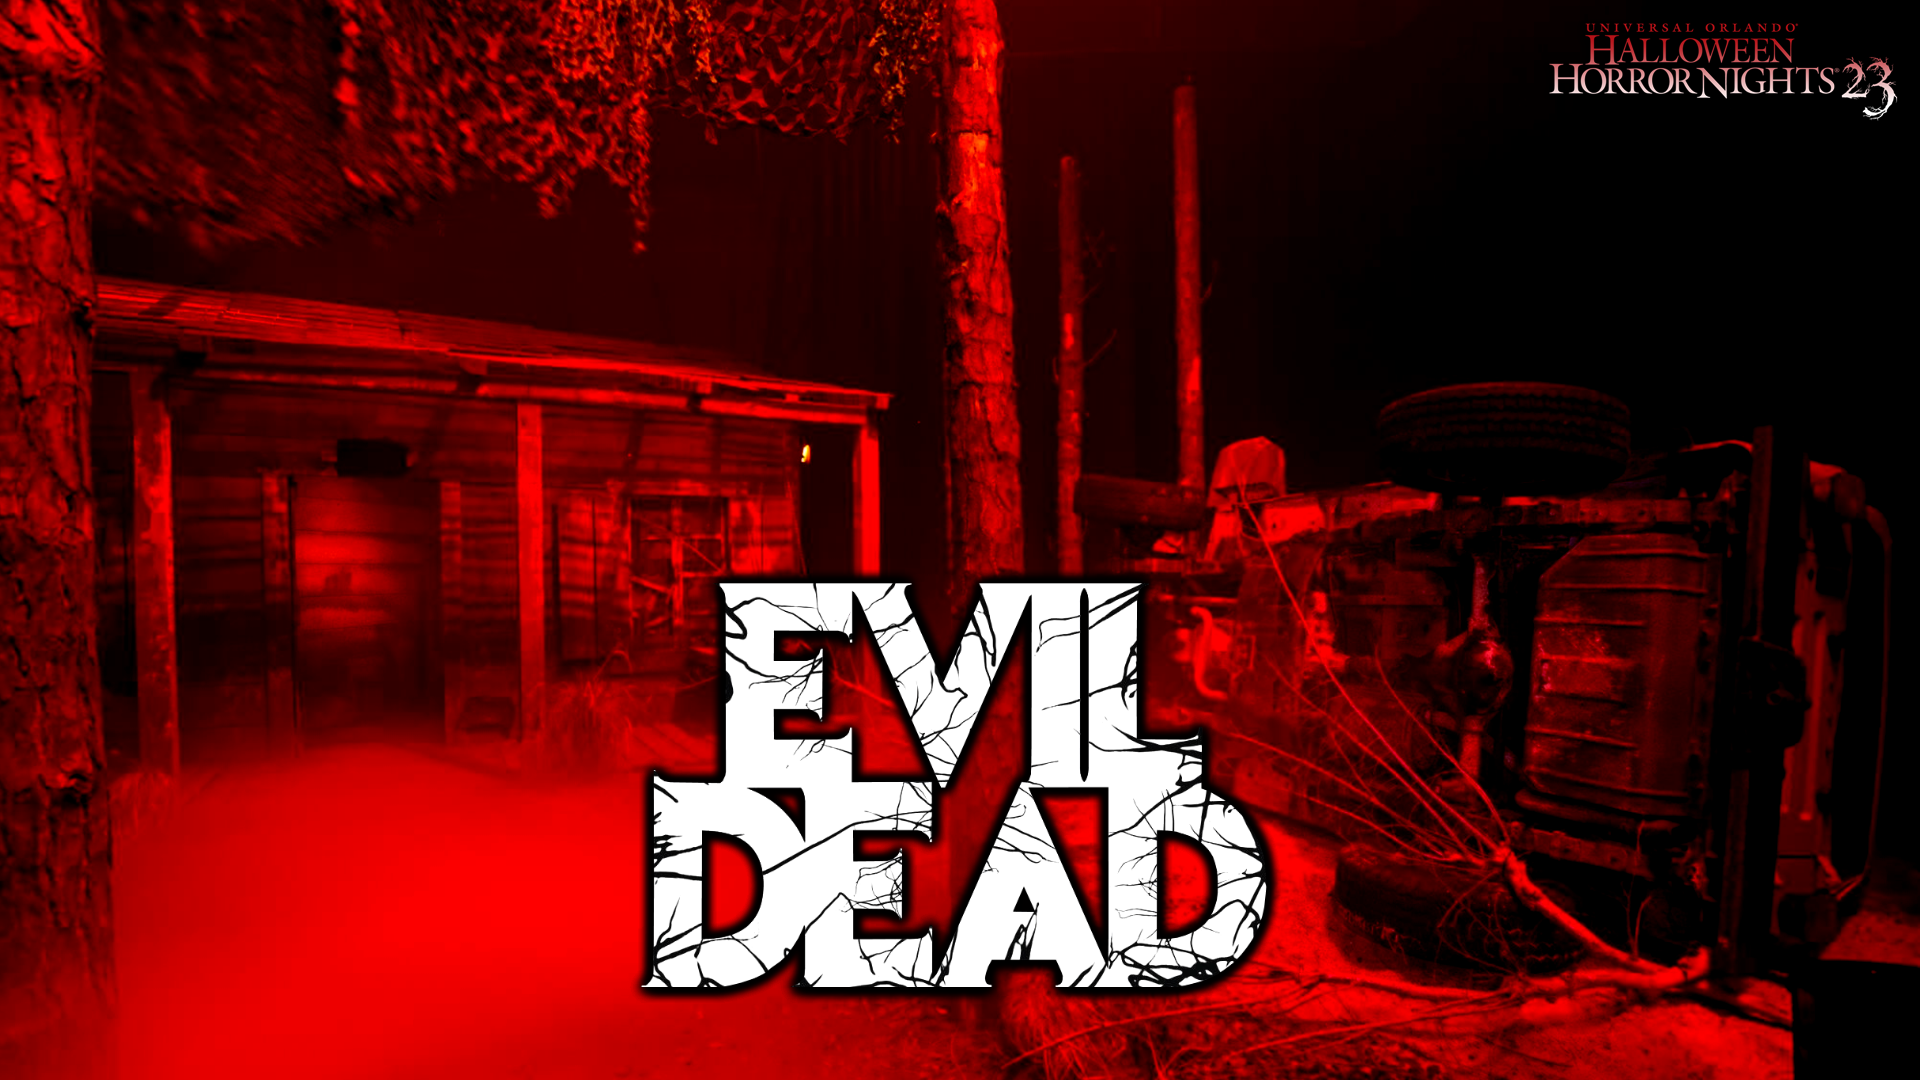 HHN 23 Evil Dead Wallpaper 2 | Horror Night Nightmares